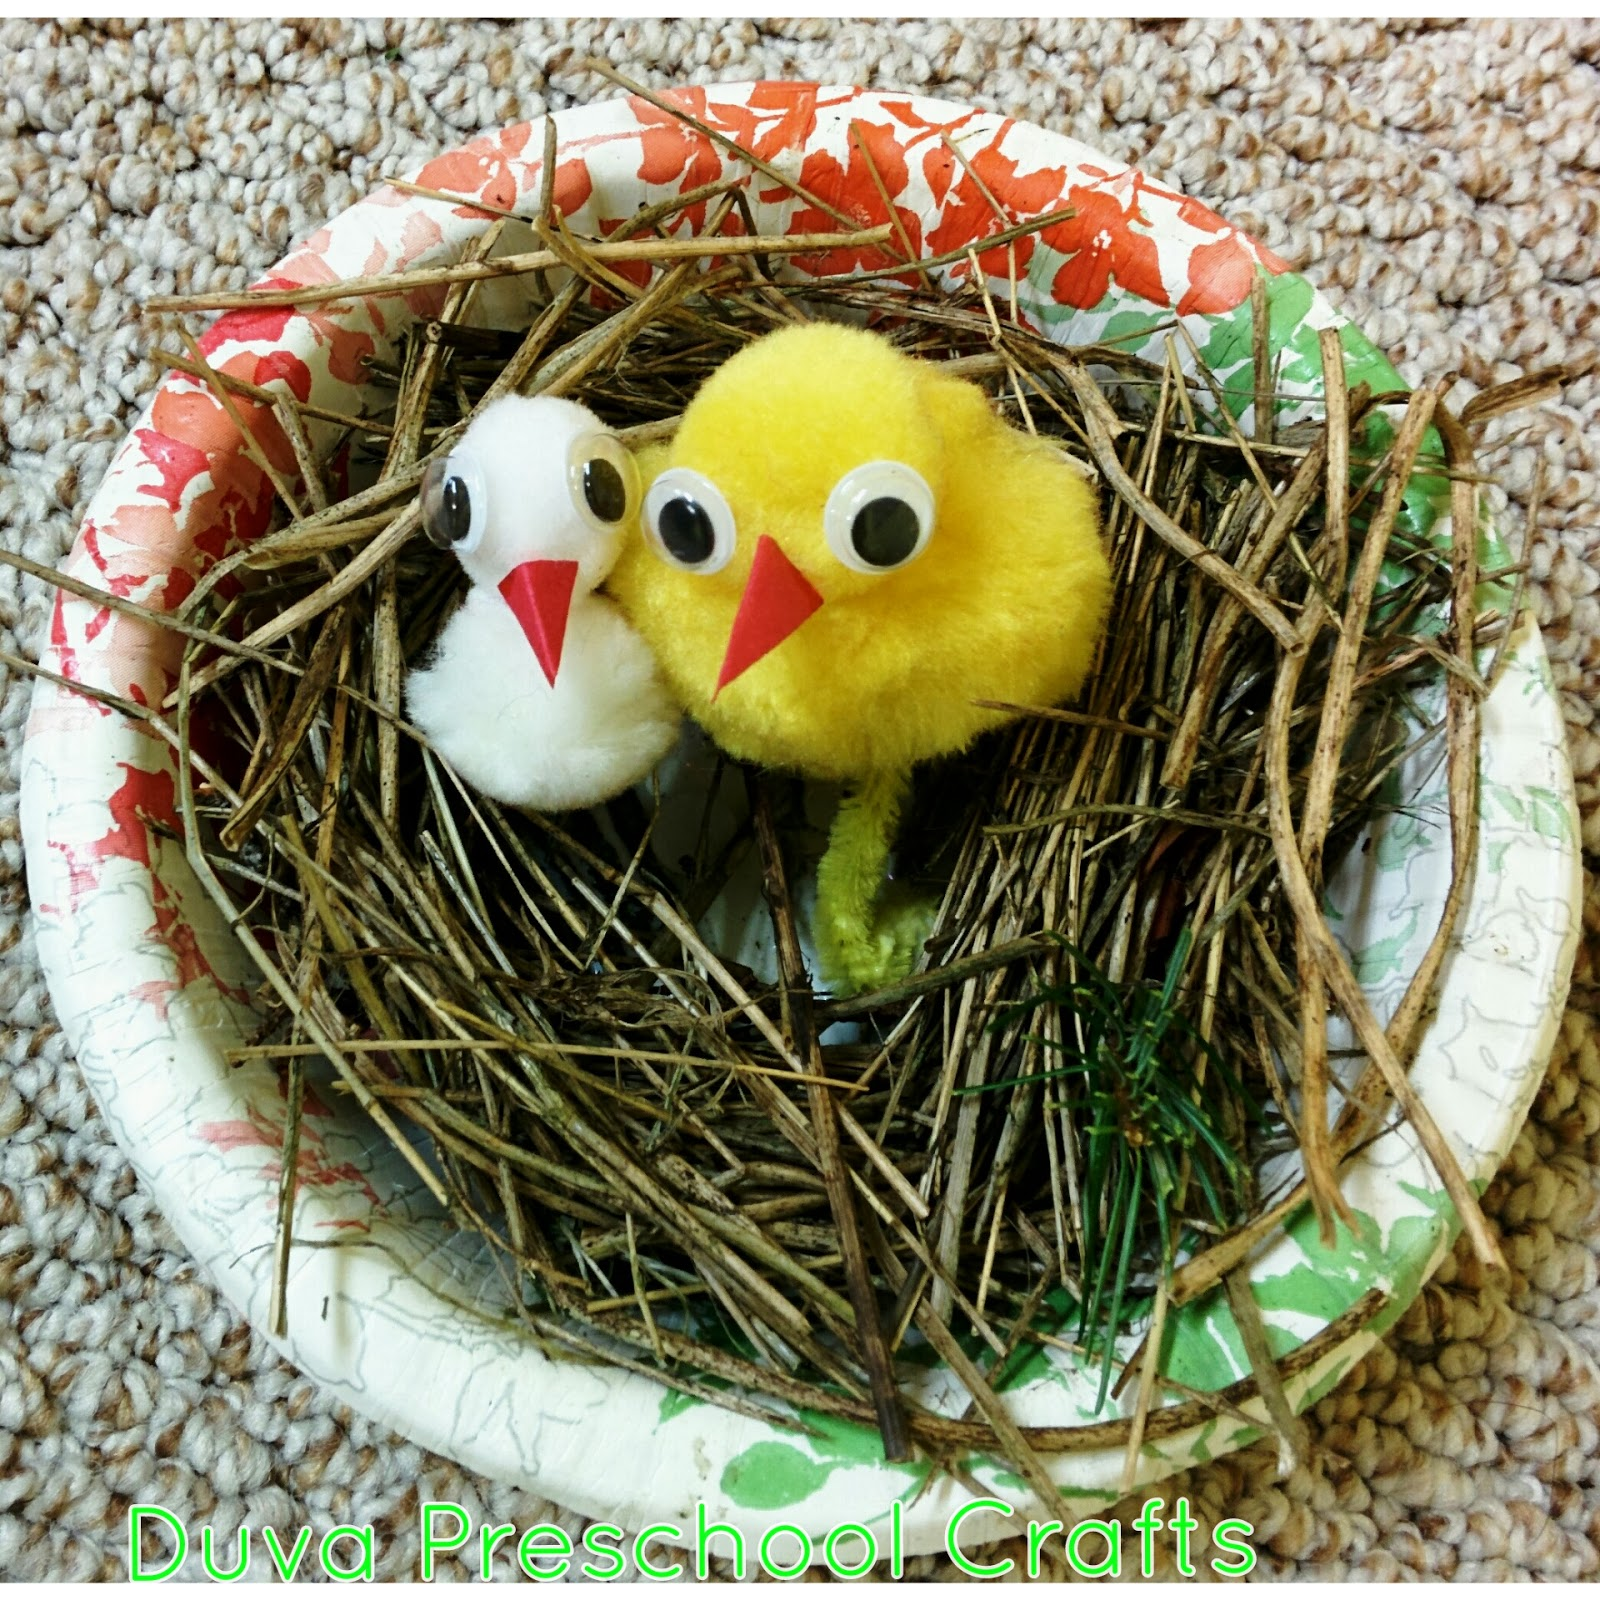 Duva Preschool Craft Ideas Bird Nest For Preschool Kids